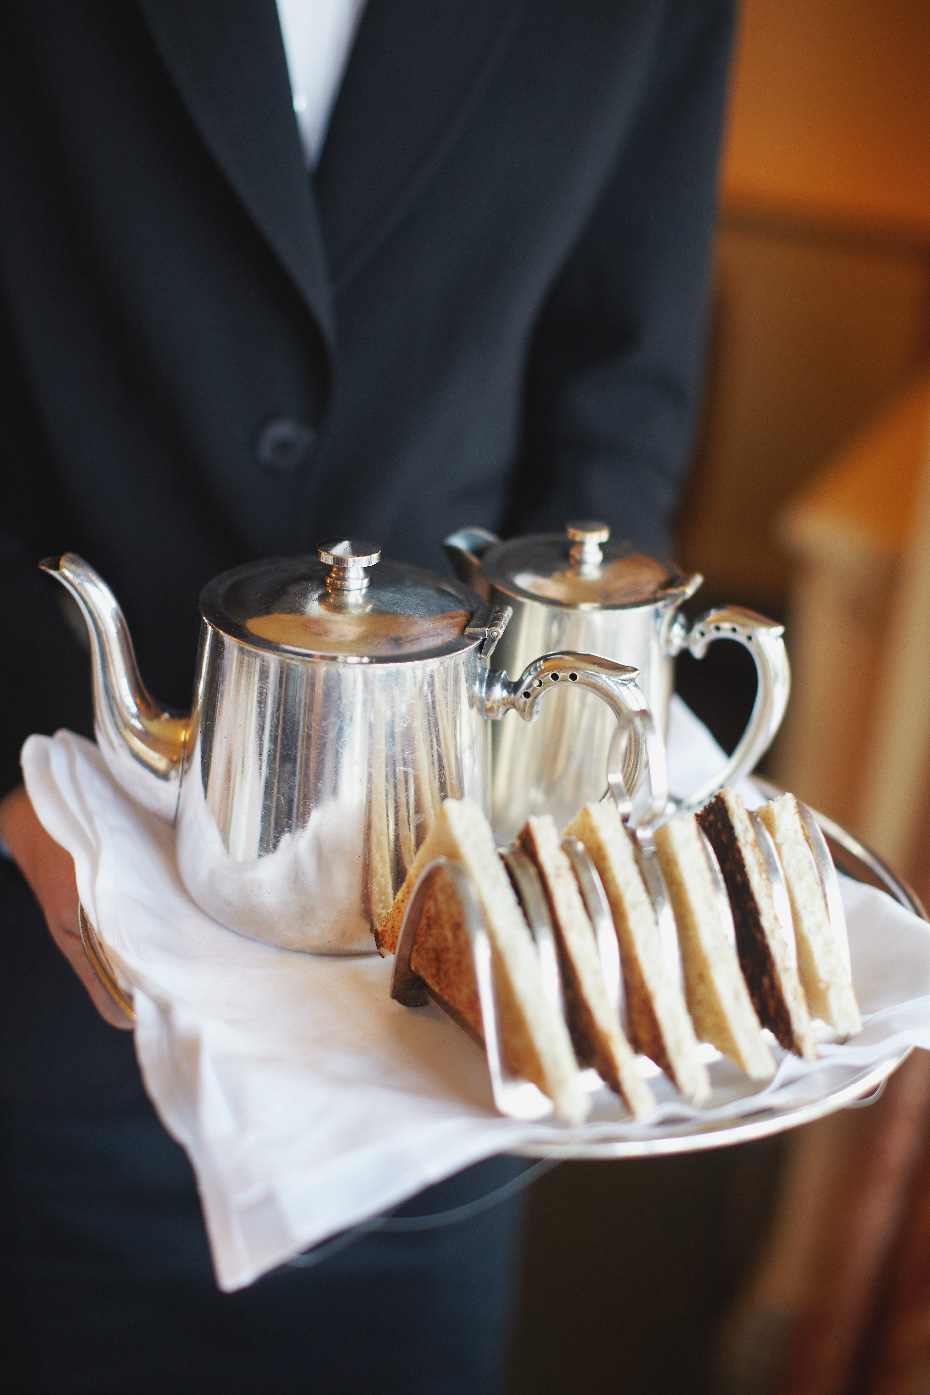 Stacey Van Berkel Photography I Elegant Tea + Toast served for breakfast at Bodyskallen Hall & Spa I Wales